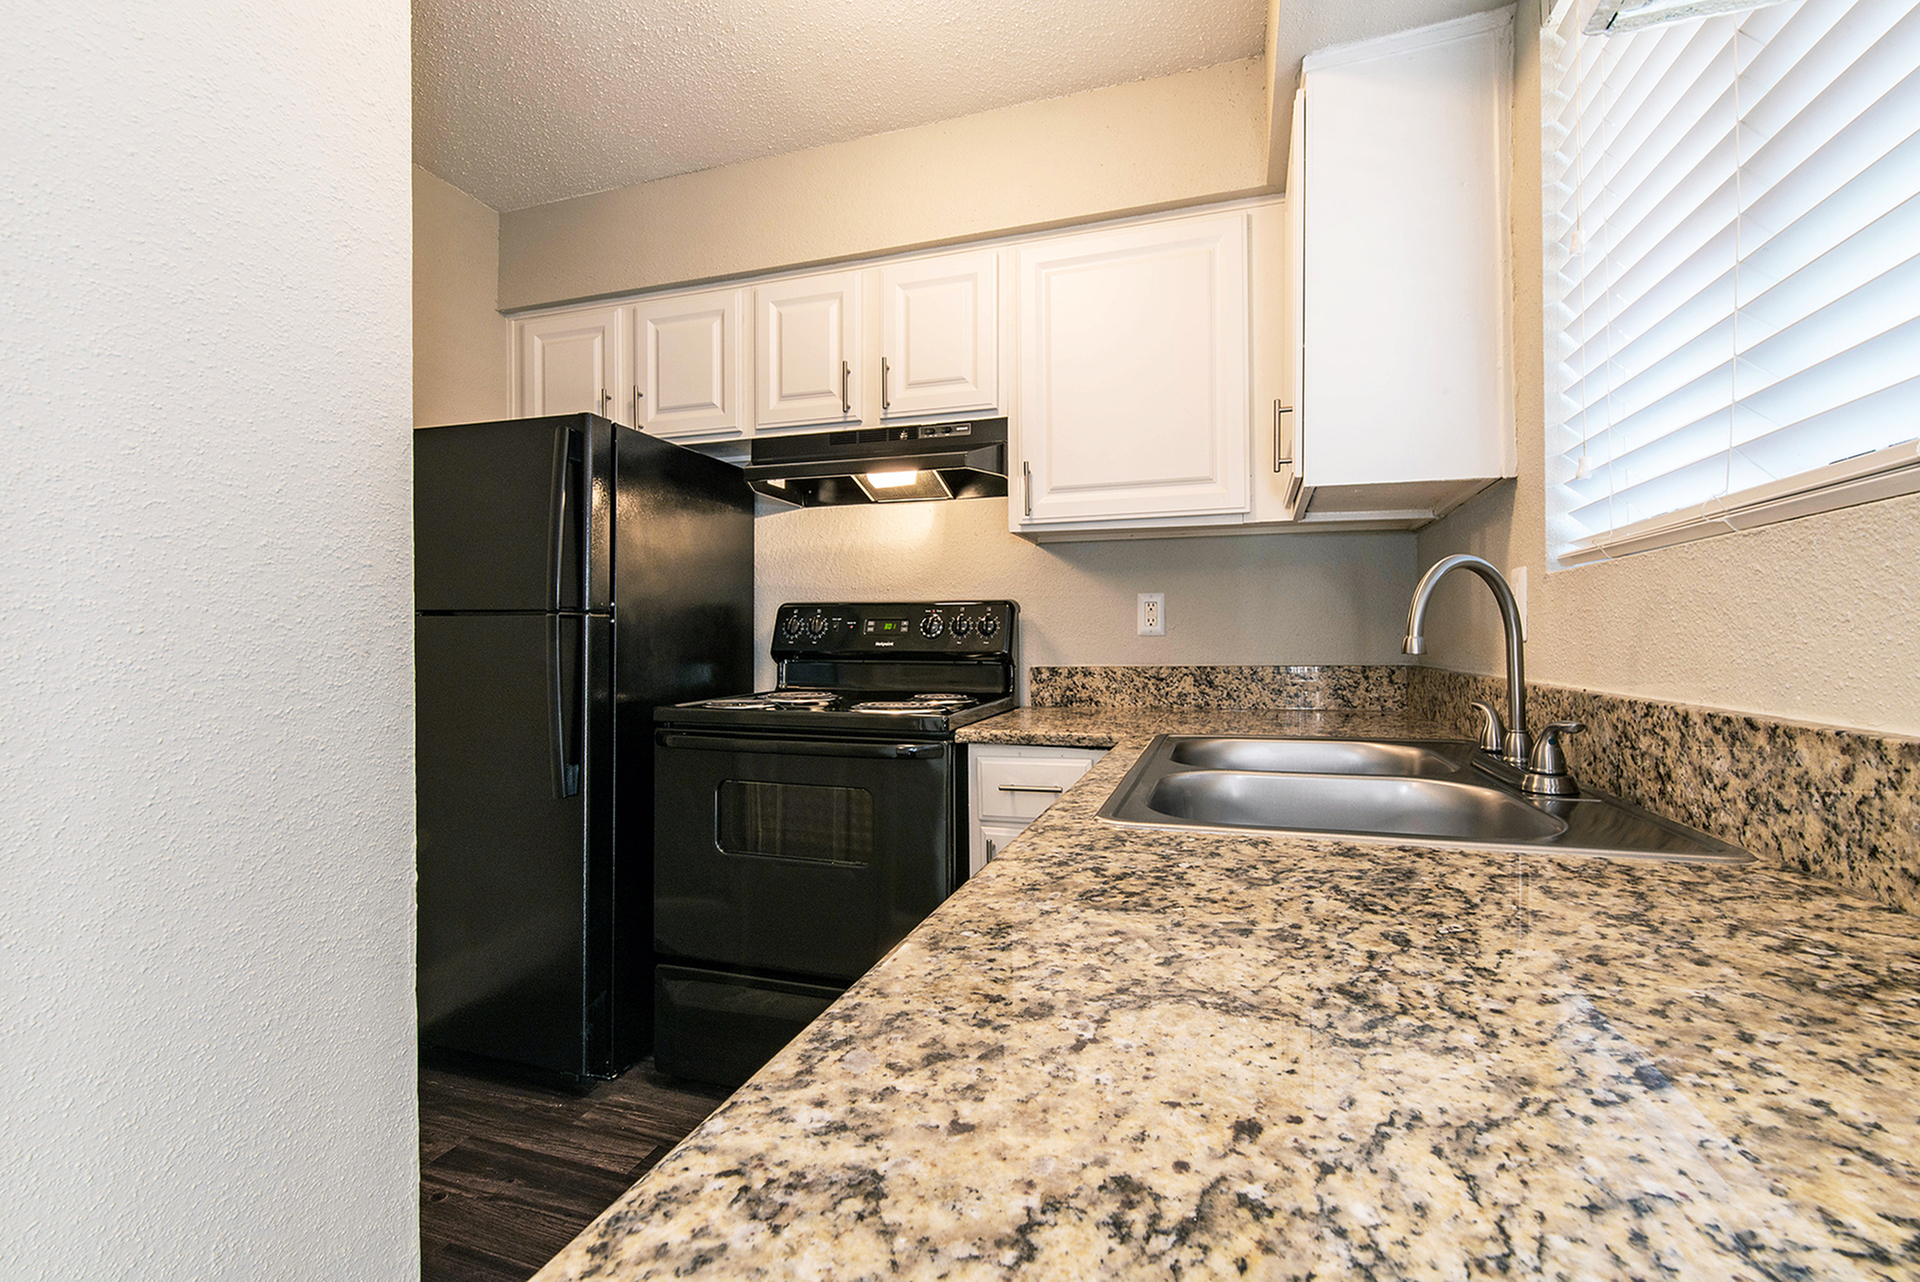 Apartments for Rent in Houston-Copper Lodge Modern Kitchen with Double Sink and Matching Stainless Steel Appliances